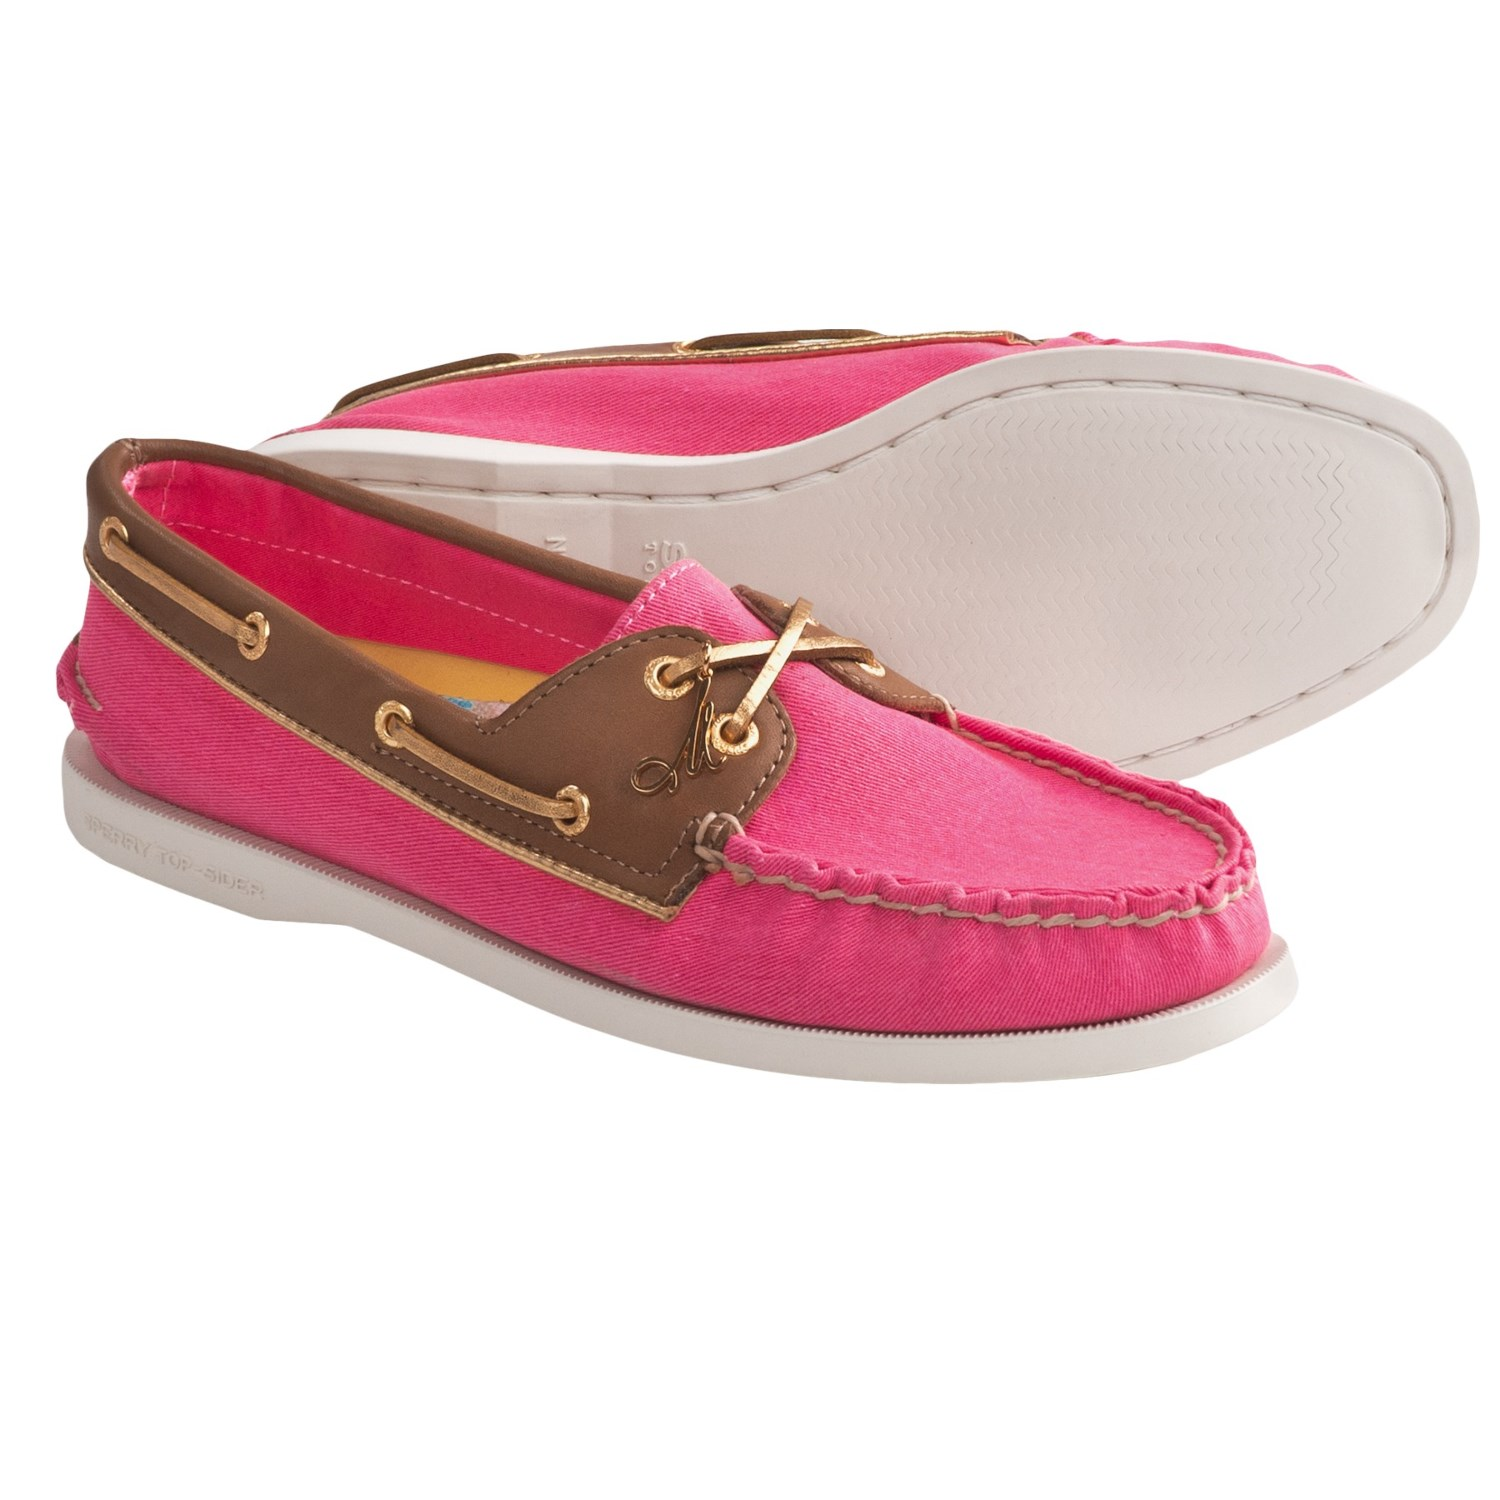 Clothing stores :: Womens sperry boat shoes clearance